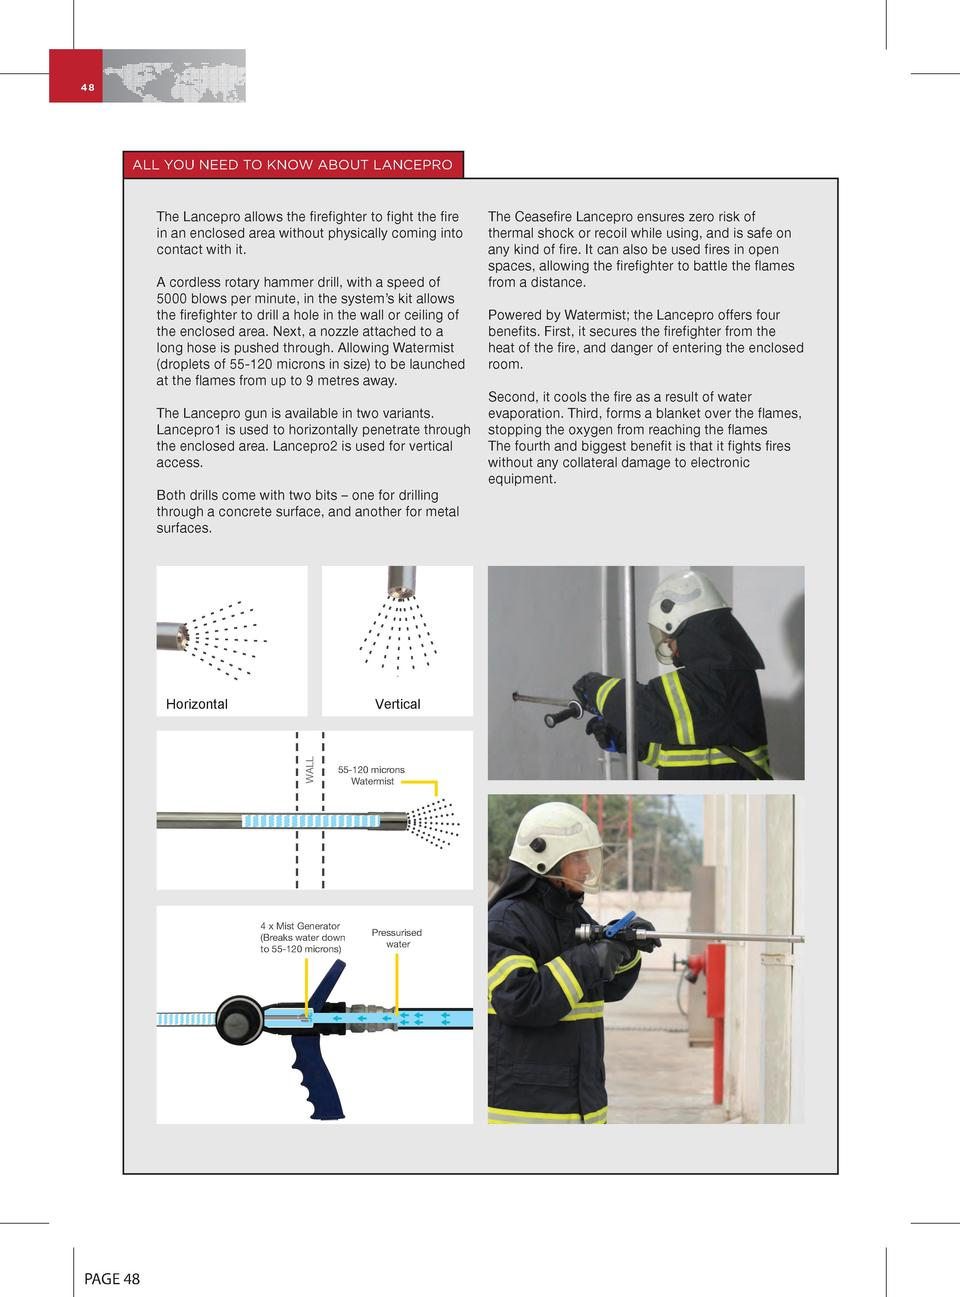 48  ALL YOU NEED TO KNOW ABOUT LANCEPRO  The Lancepro allows the firefighter to fight the fire in an enclosed area without...